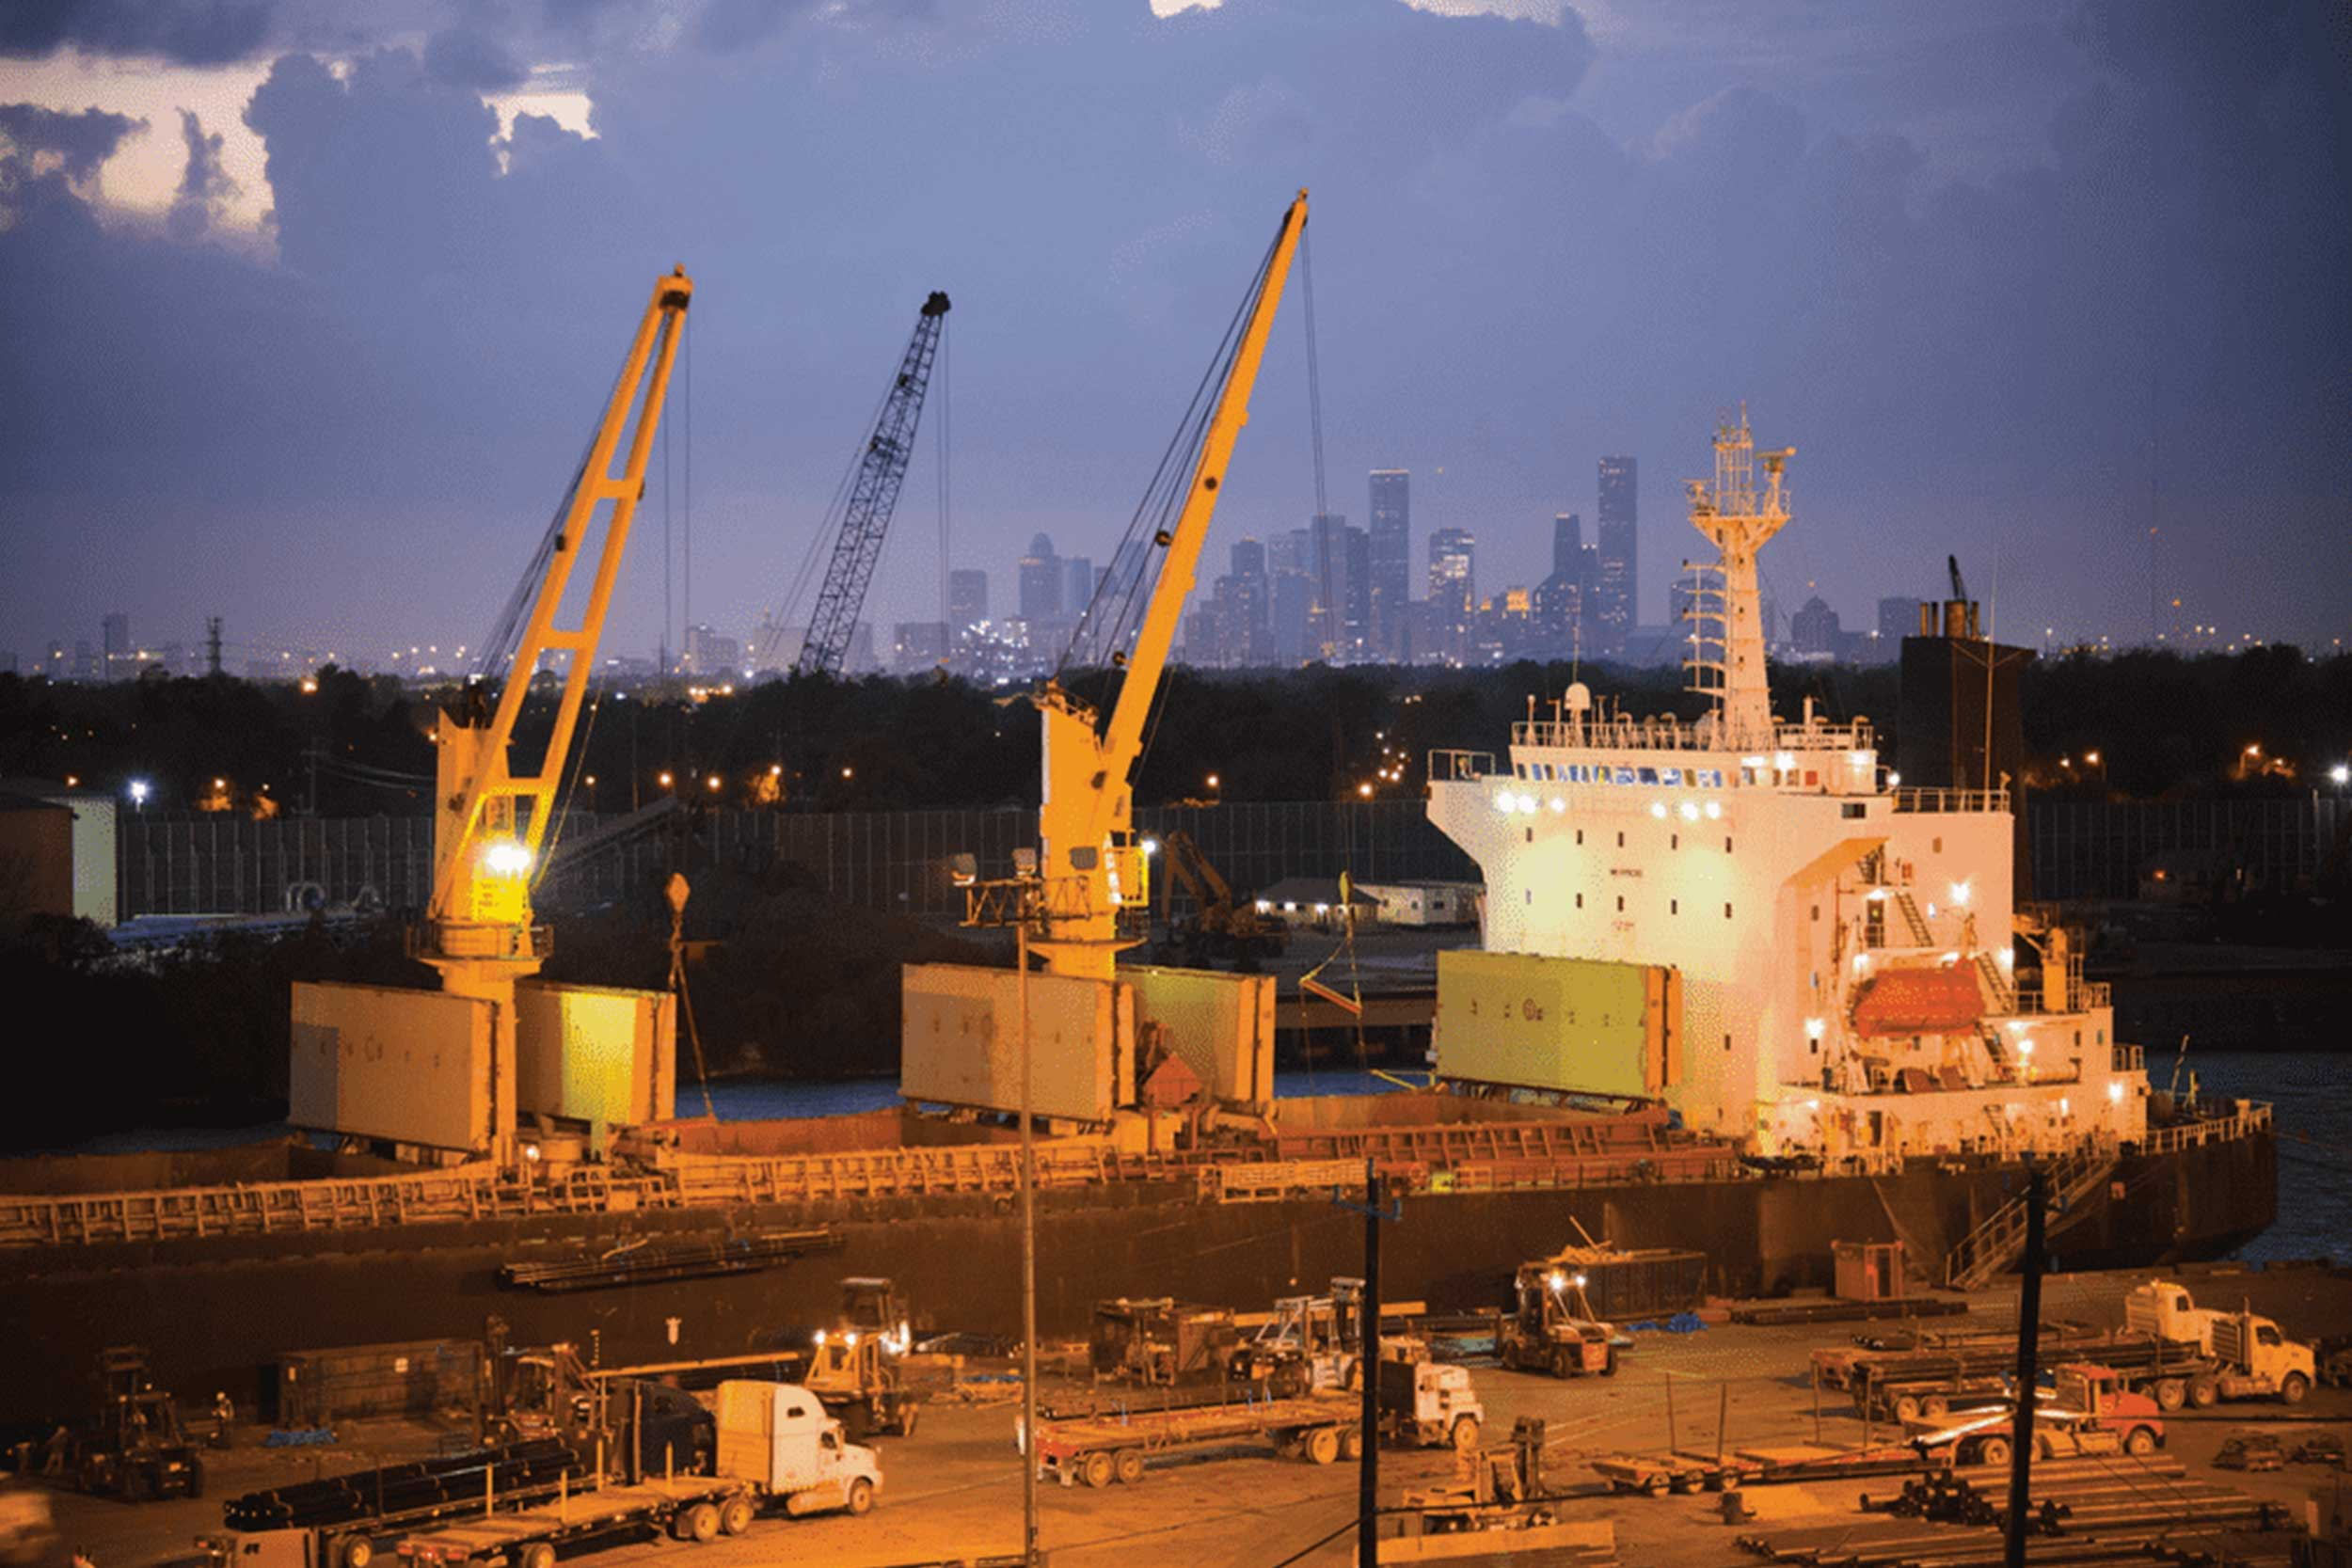 Shipping vessels and trucks operate at night in Port of Houston, Texas.